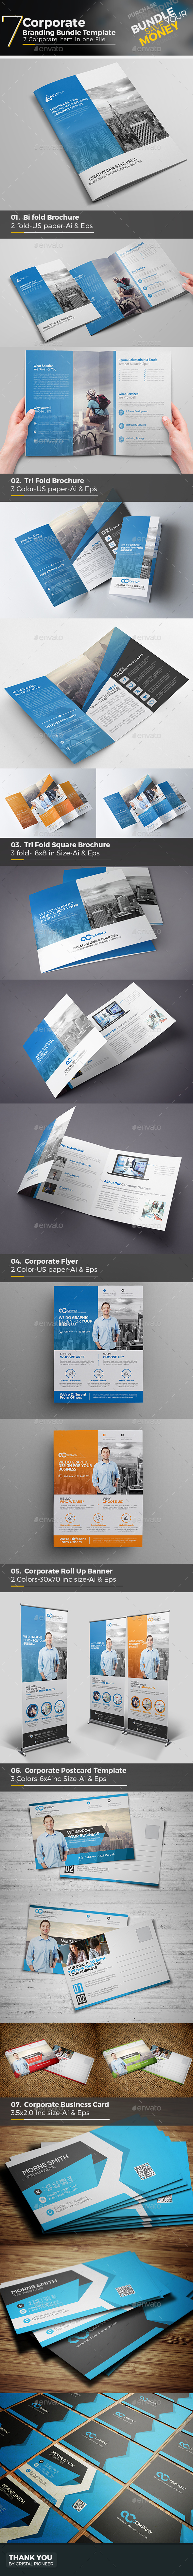 Corporate Mega Branding Bundle - Corporate Brochures